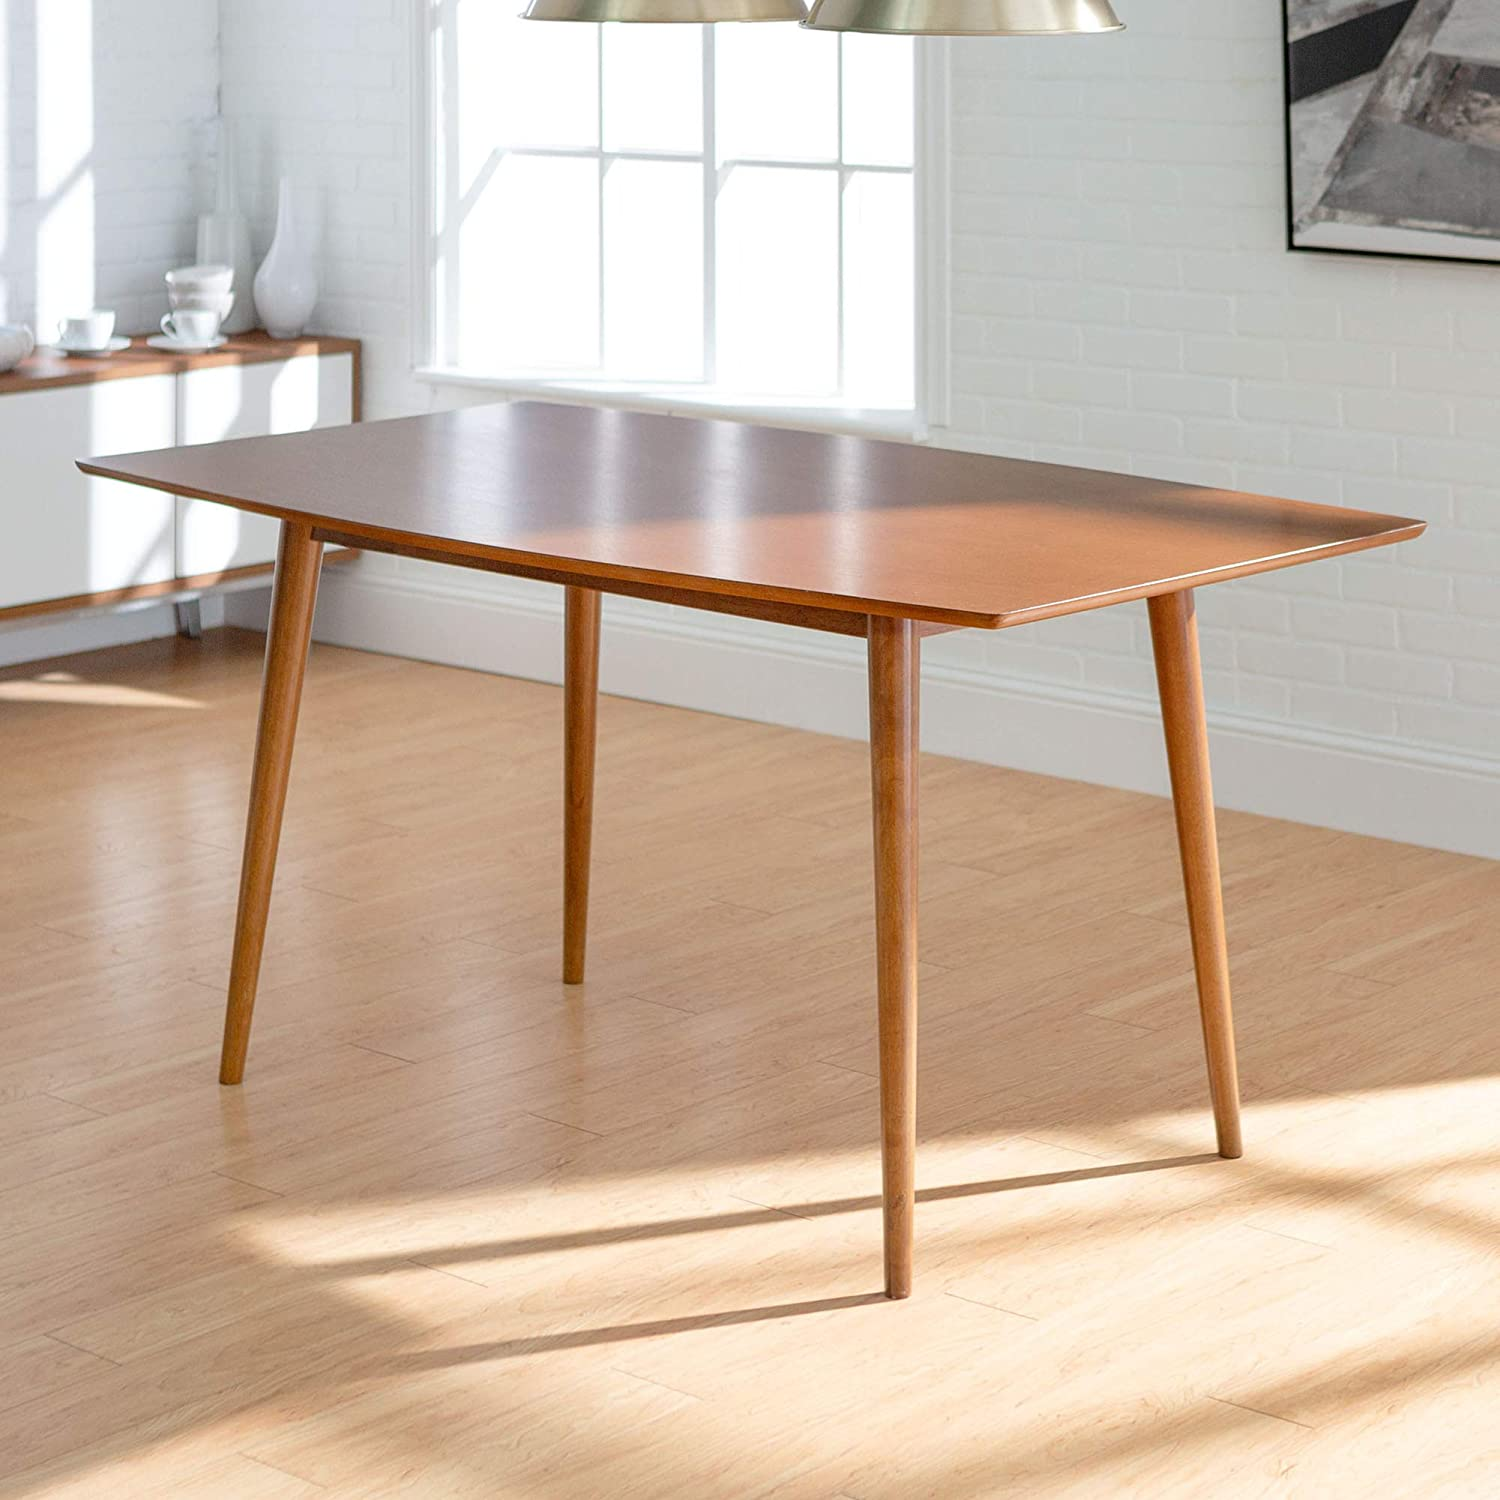 We Furniture Azw60mcac 6 Person Mid Century Modern Wood Hairpin Rectangle Kitchen Dining Table 60 Inch Brown